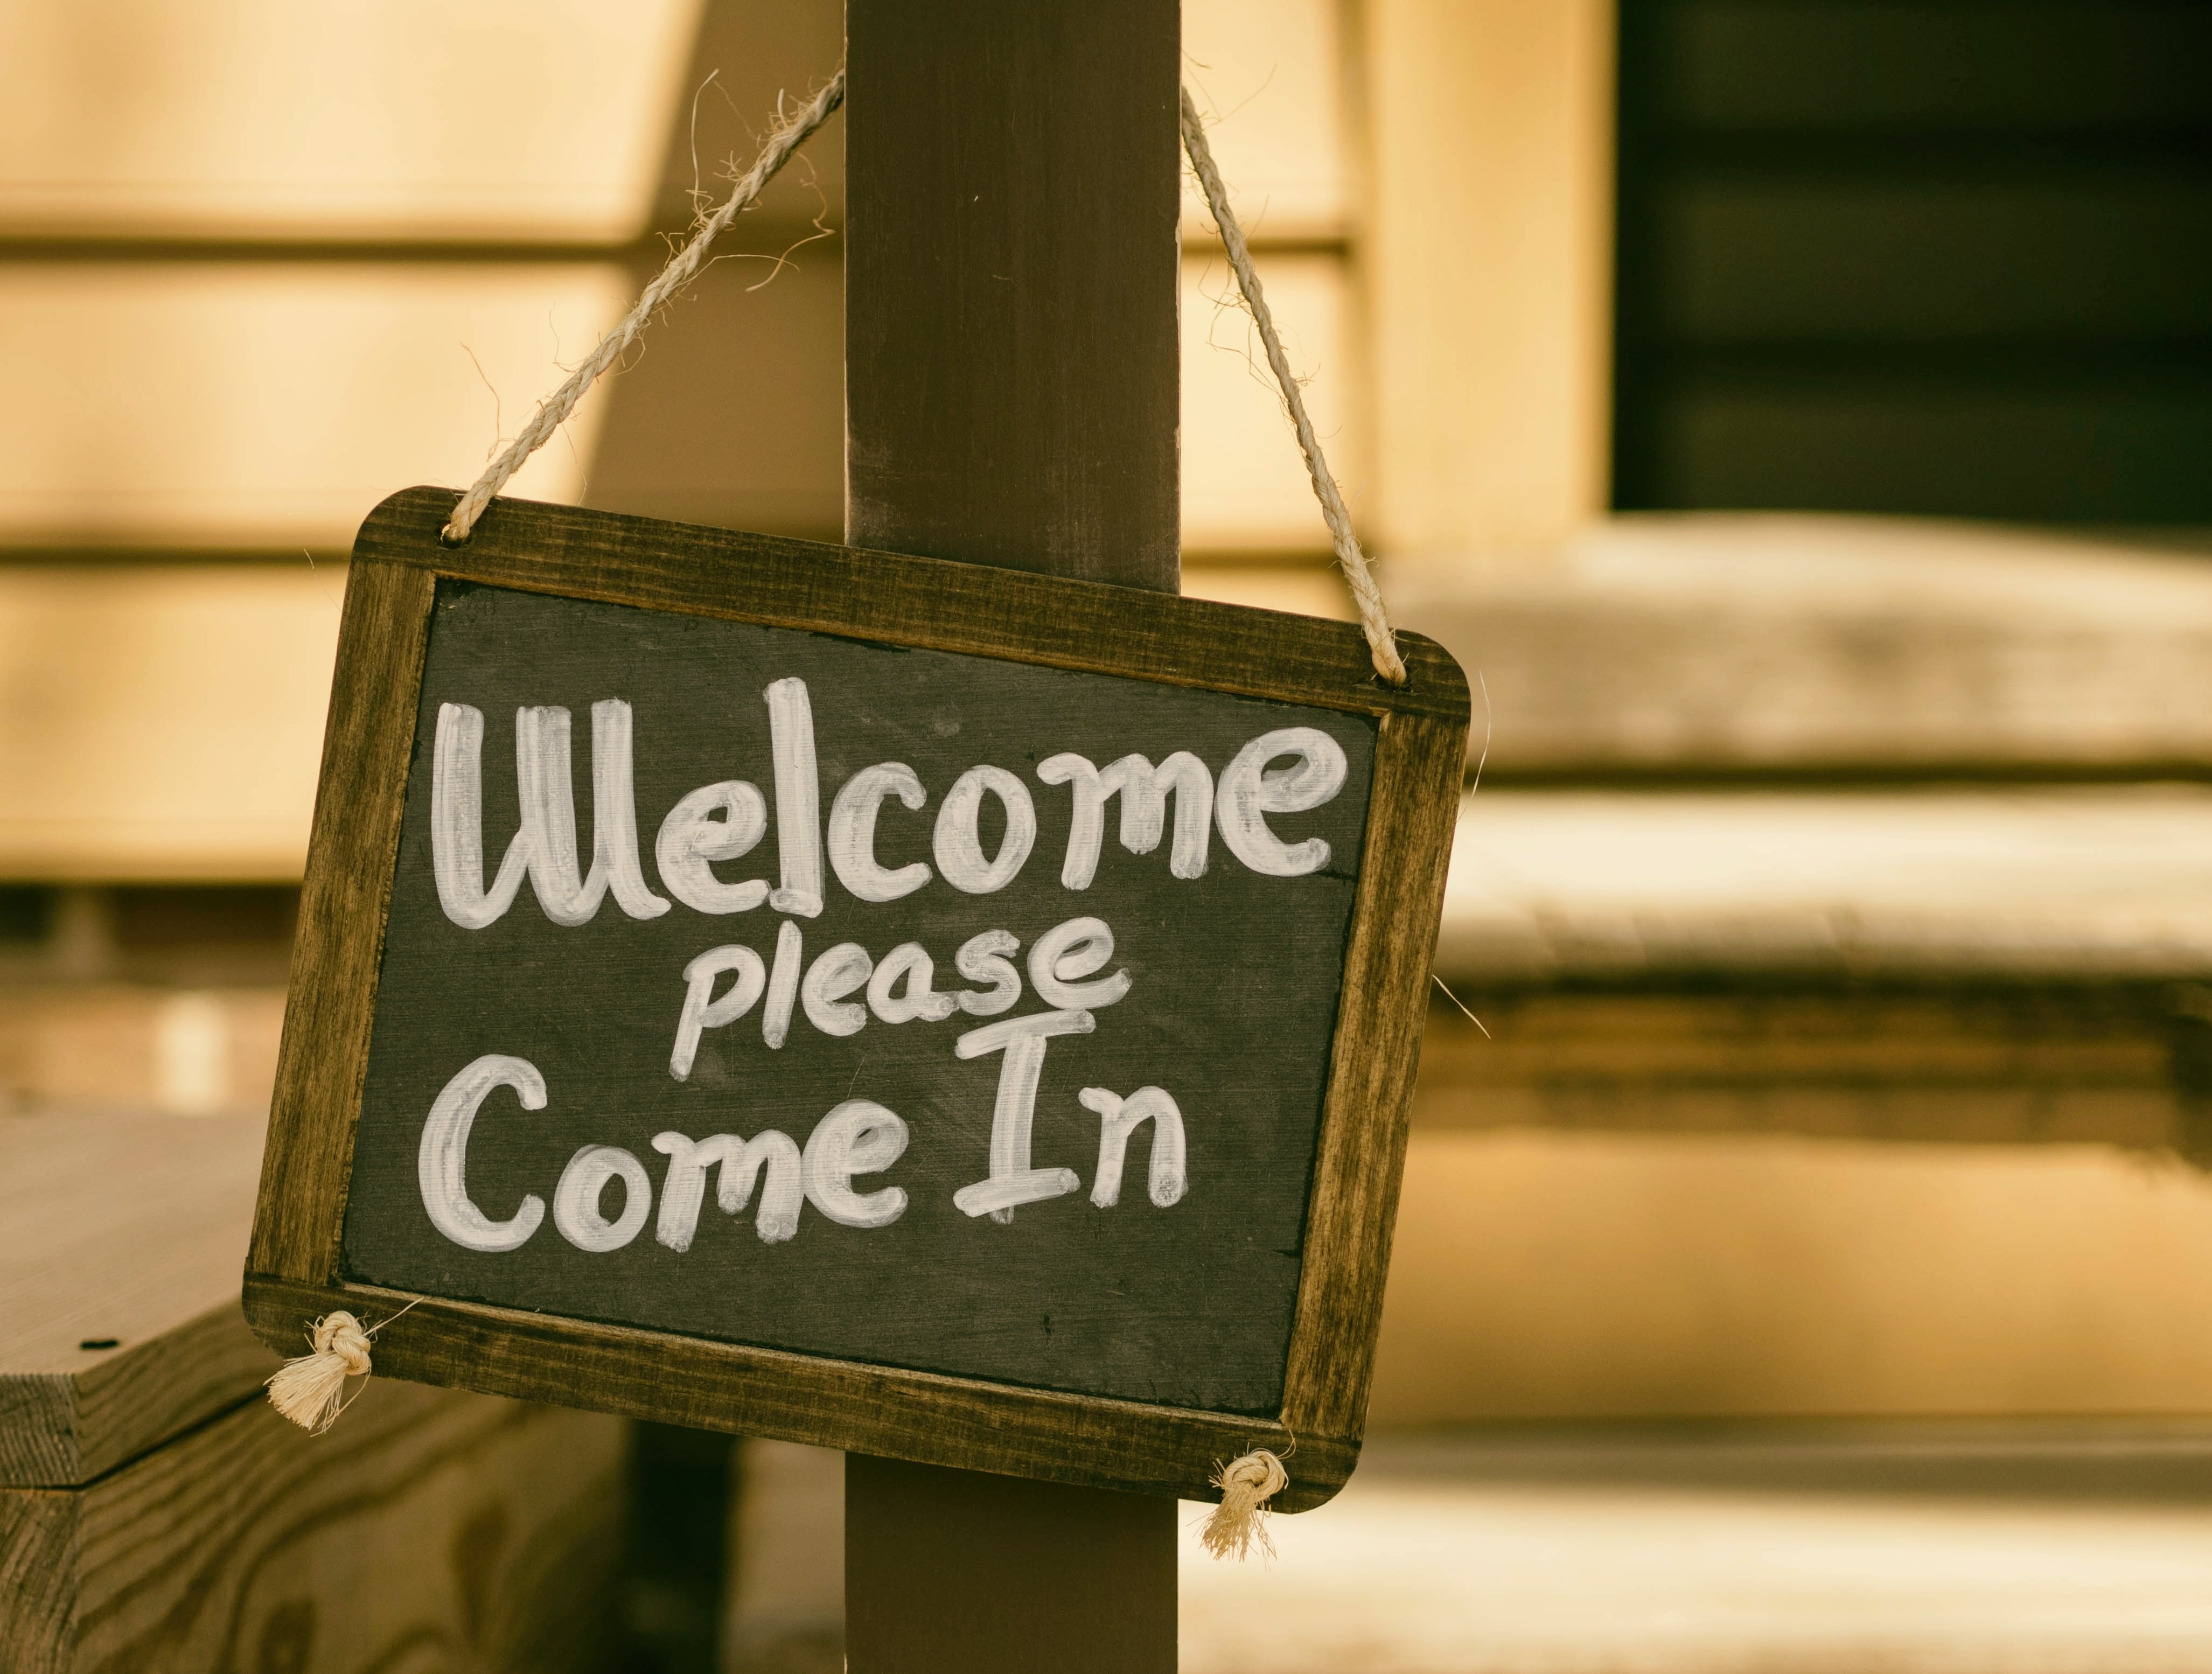 """A chalkboard sign hanging from a pole, which reads """"Welcome please come in."""""""